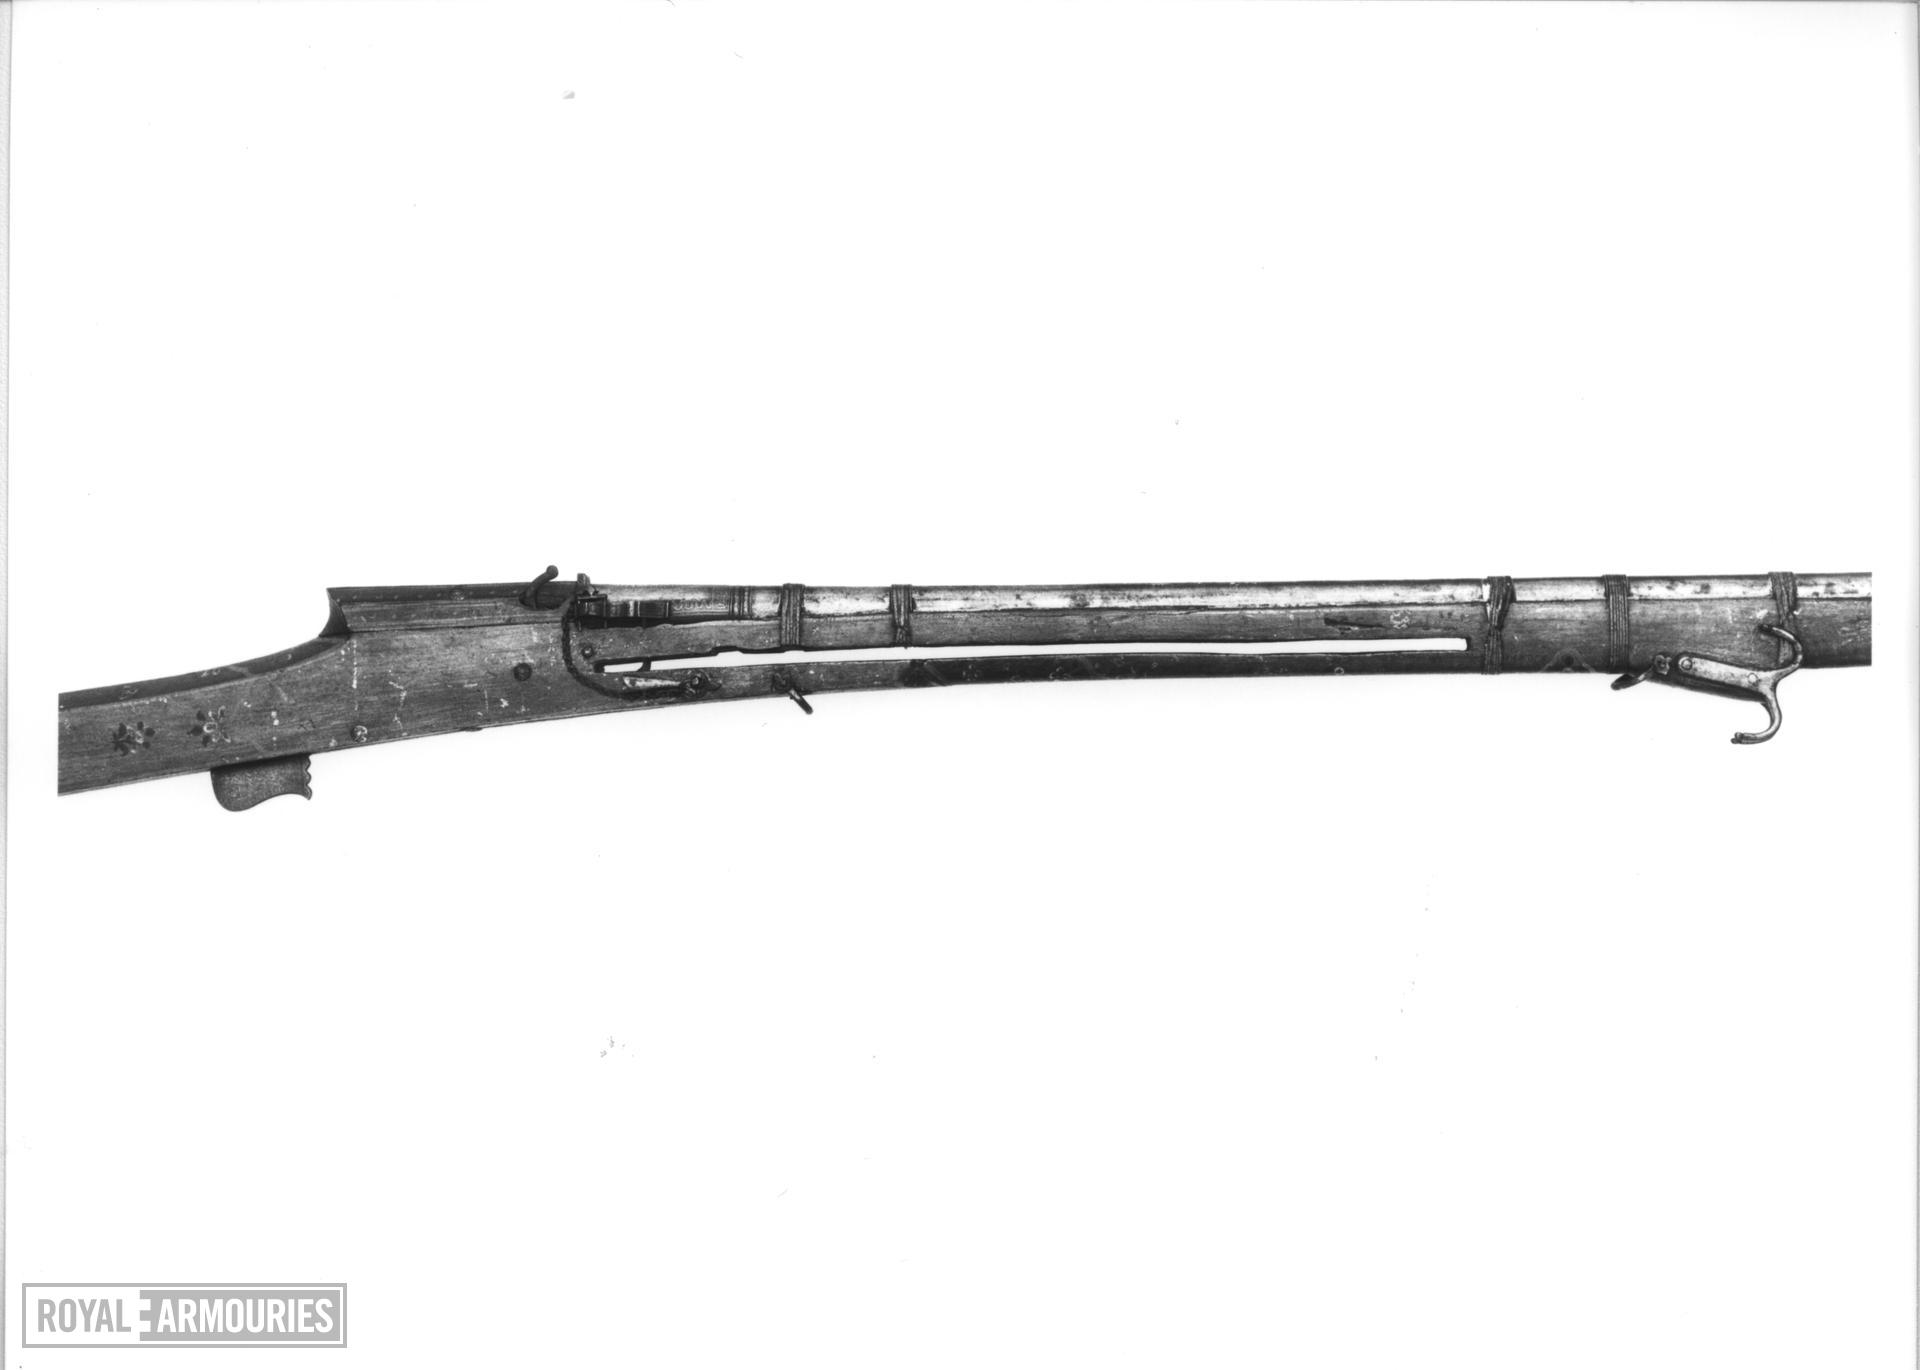 Matchlock combination bow and musket